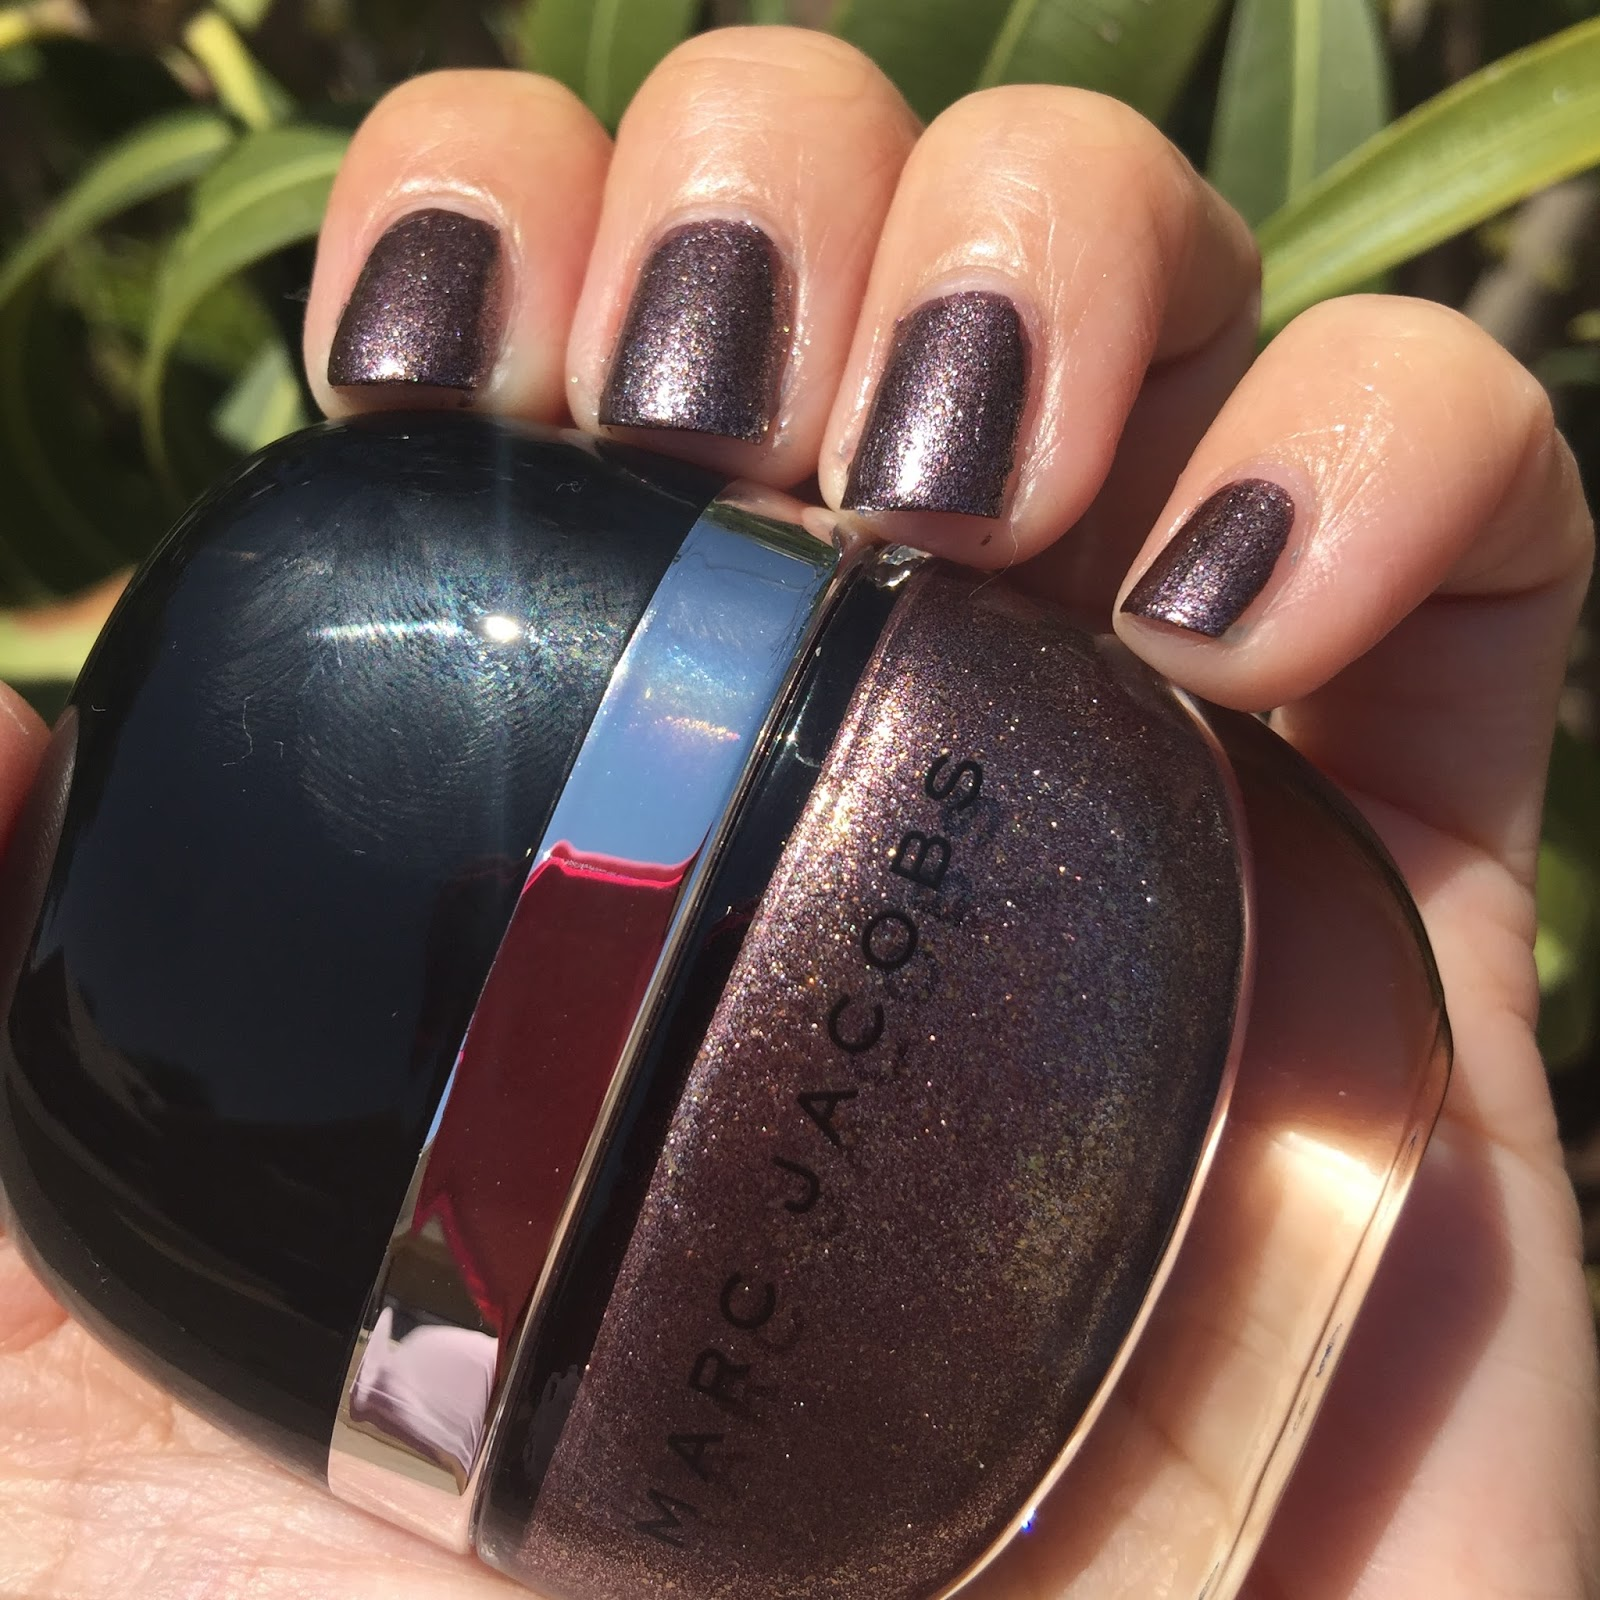 Marc Jacobs Beauty Enamored Hi Shine Nail Lacquer Swatches Review The Shades Of U